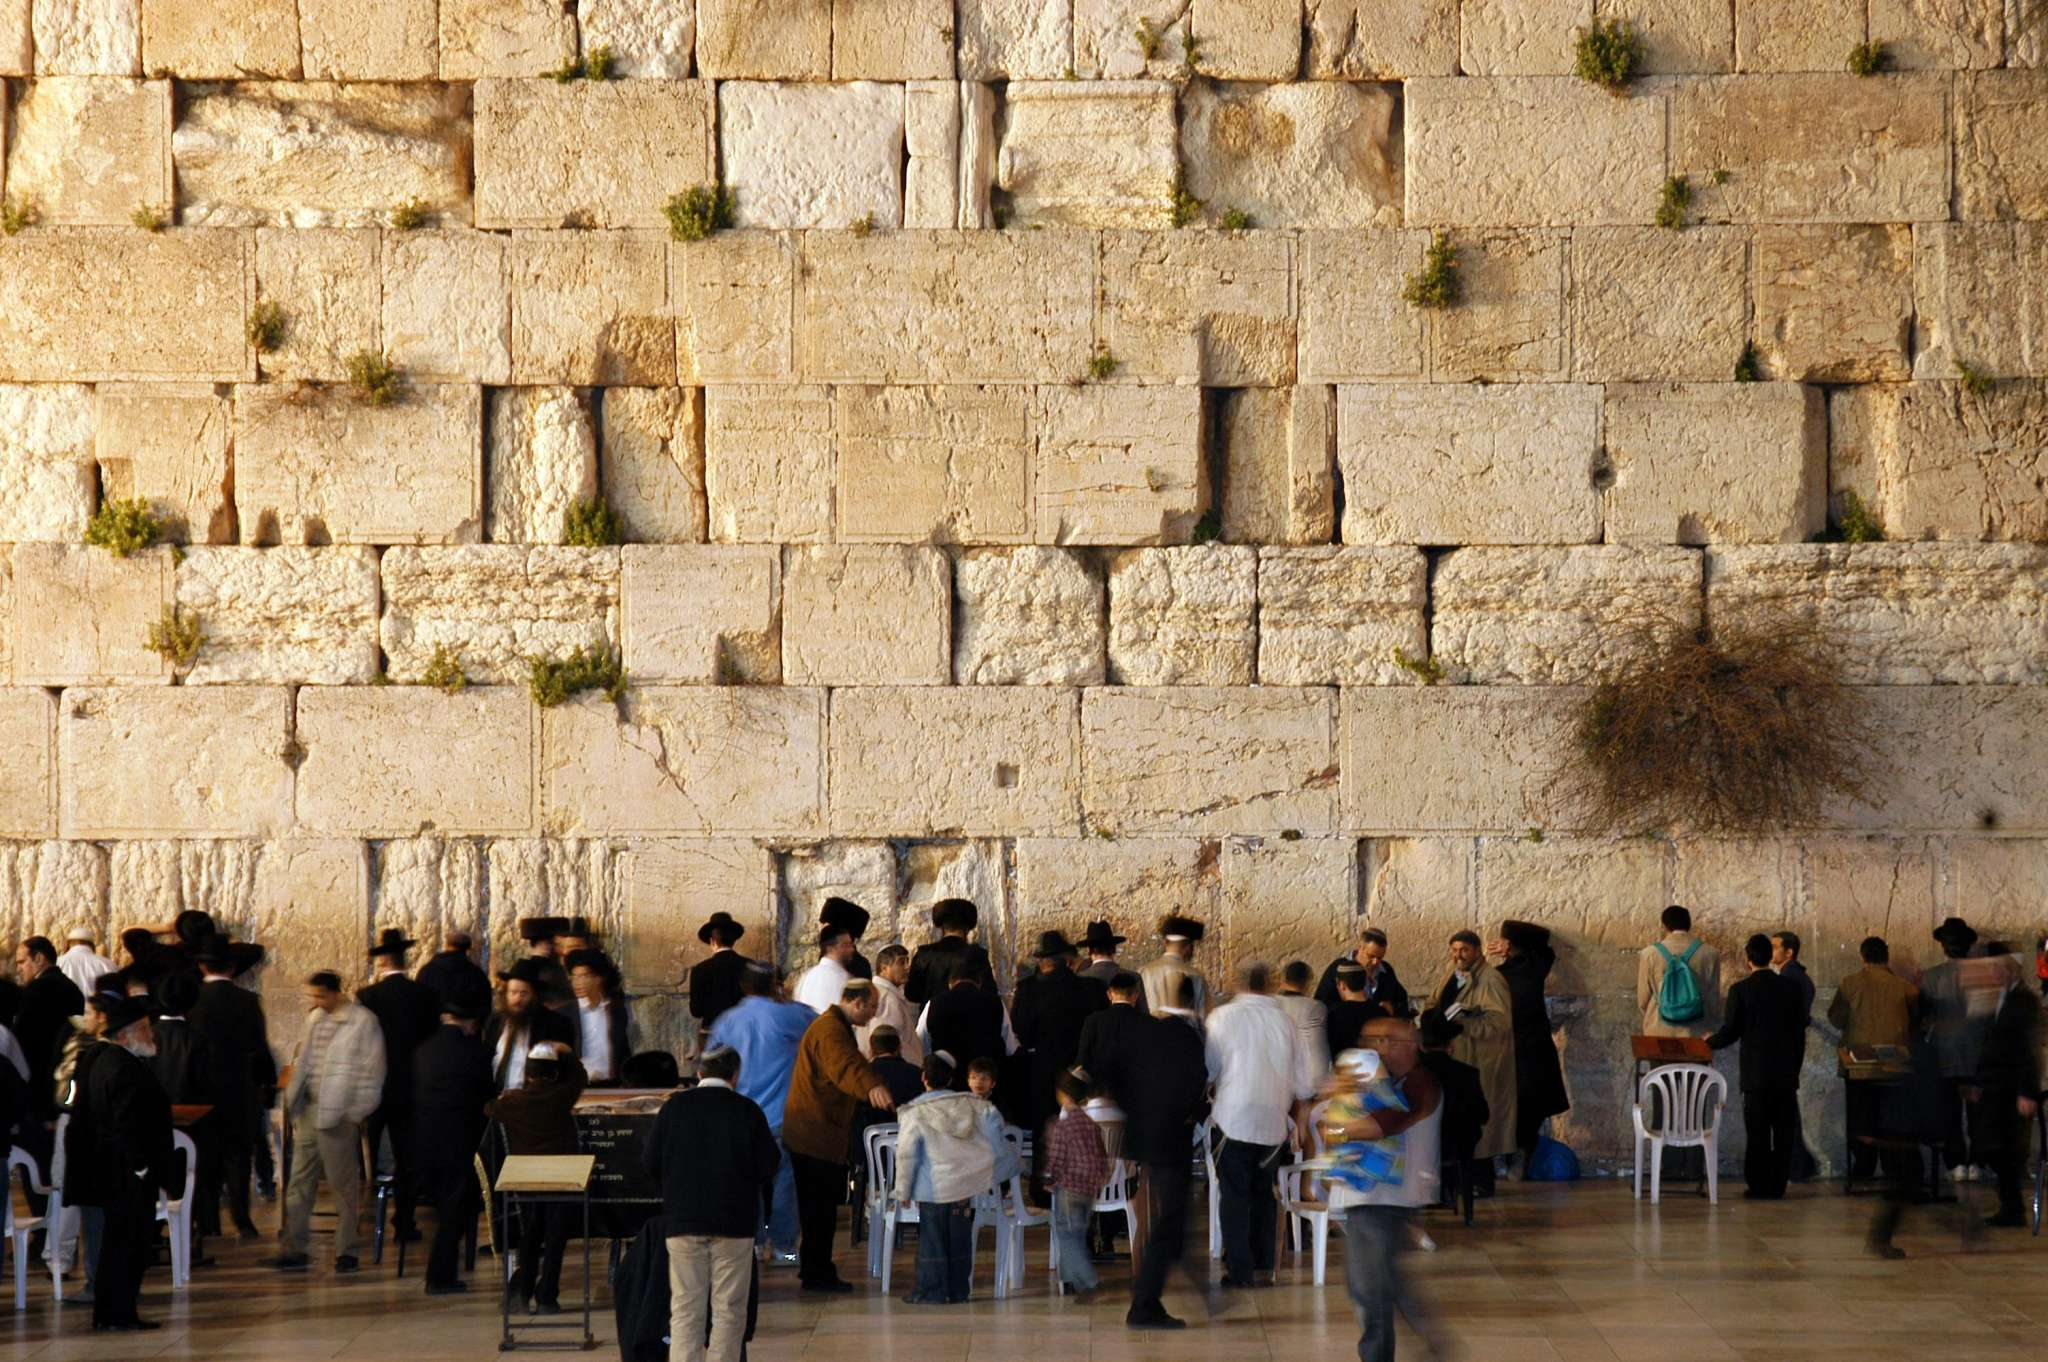 Israel's Conscription Laws: Putting Security over Religion?